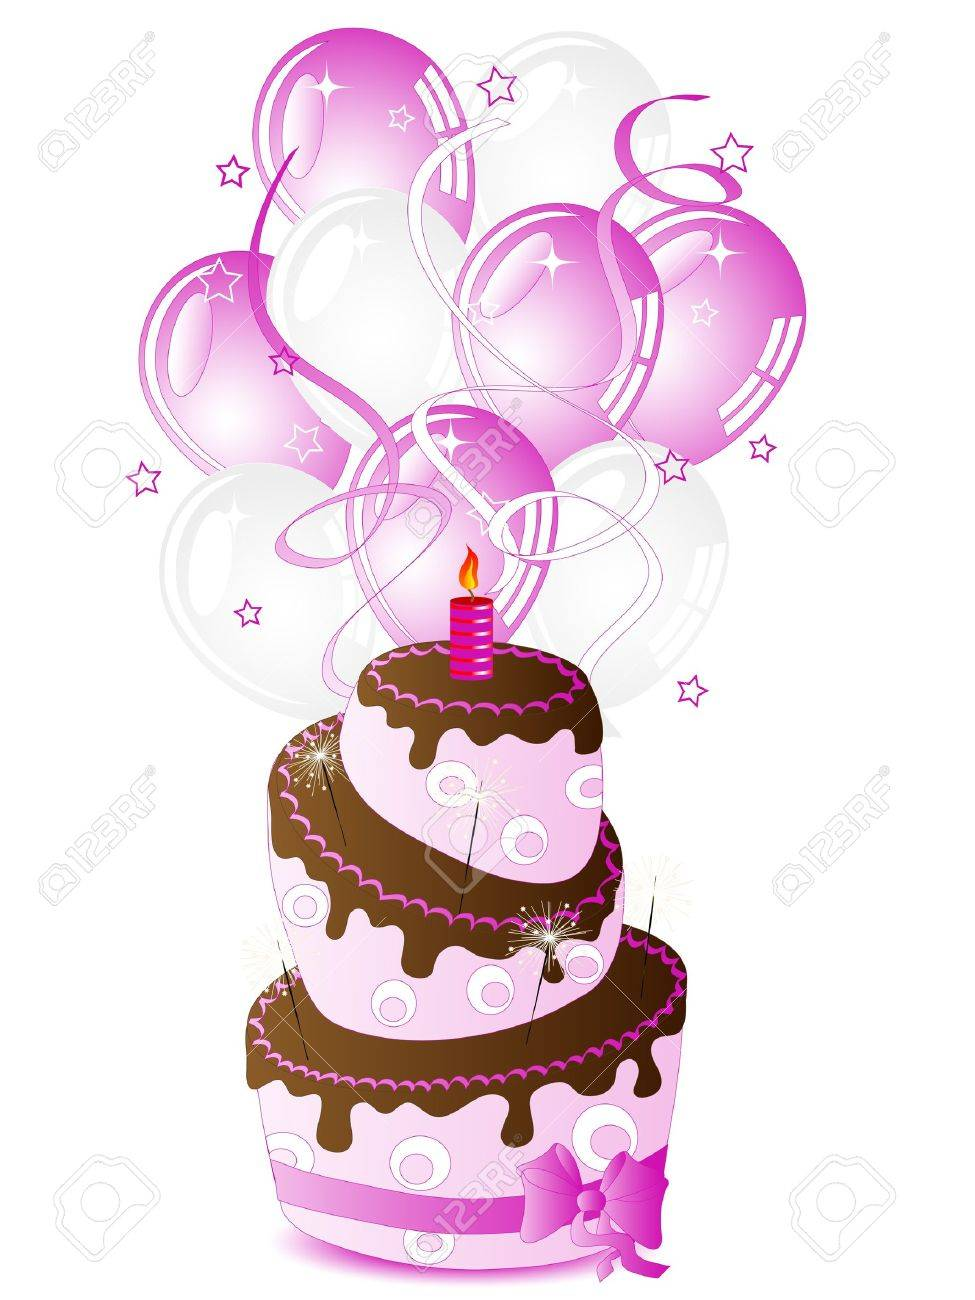 Fabulous Birthday Cake For Her And Party Balloons Royalty Free Cliparts Personalised Birthday Cards Paralily Jamesorg